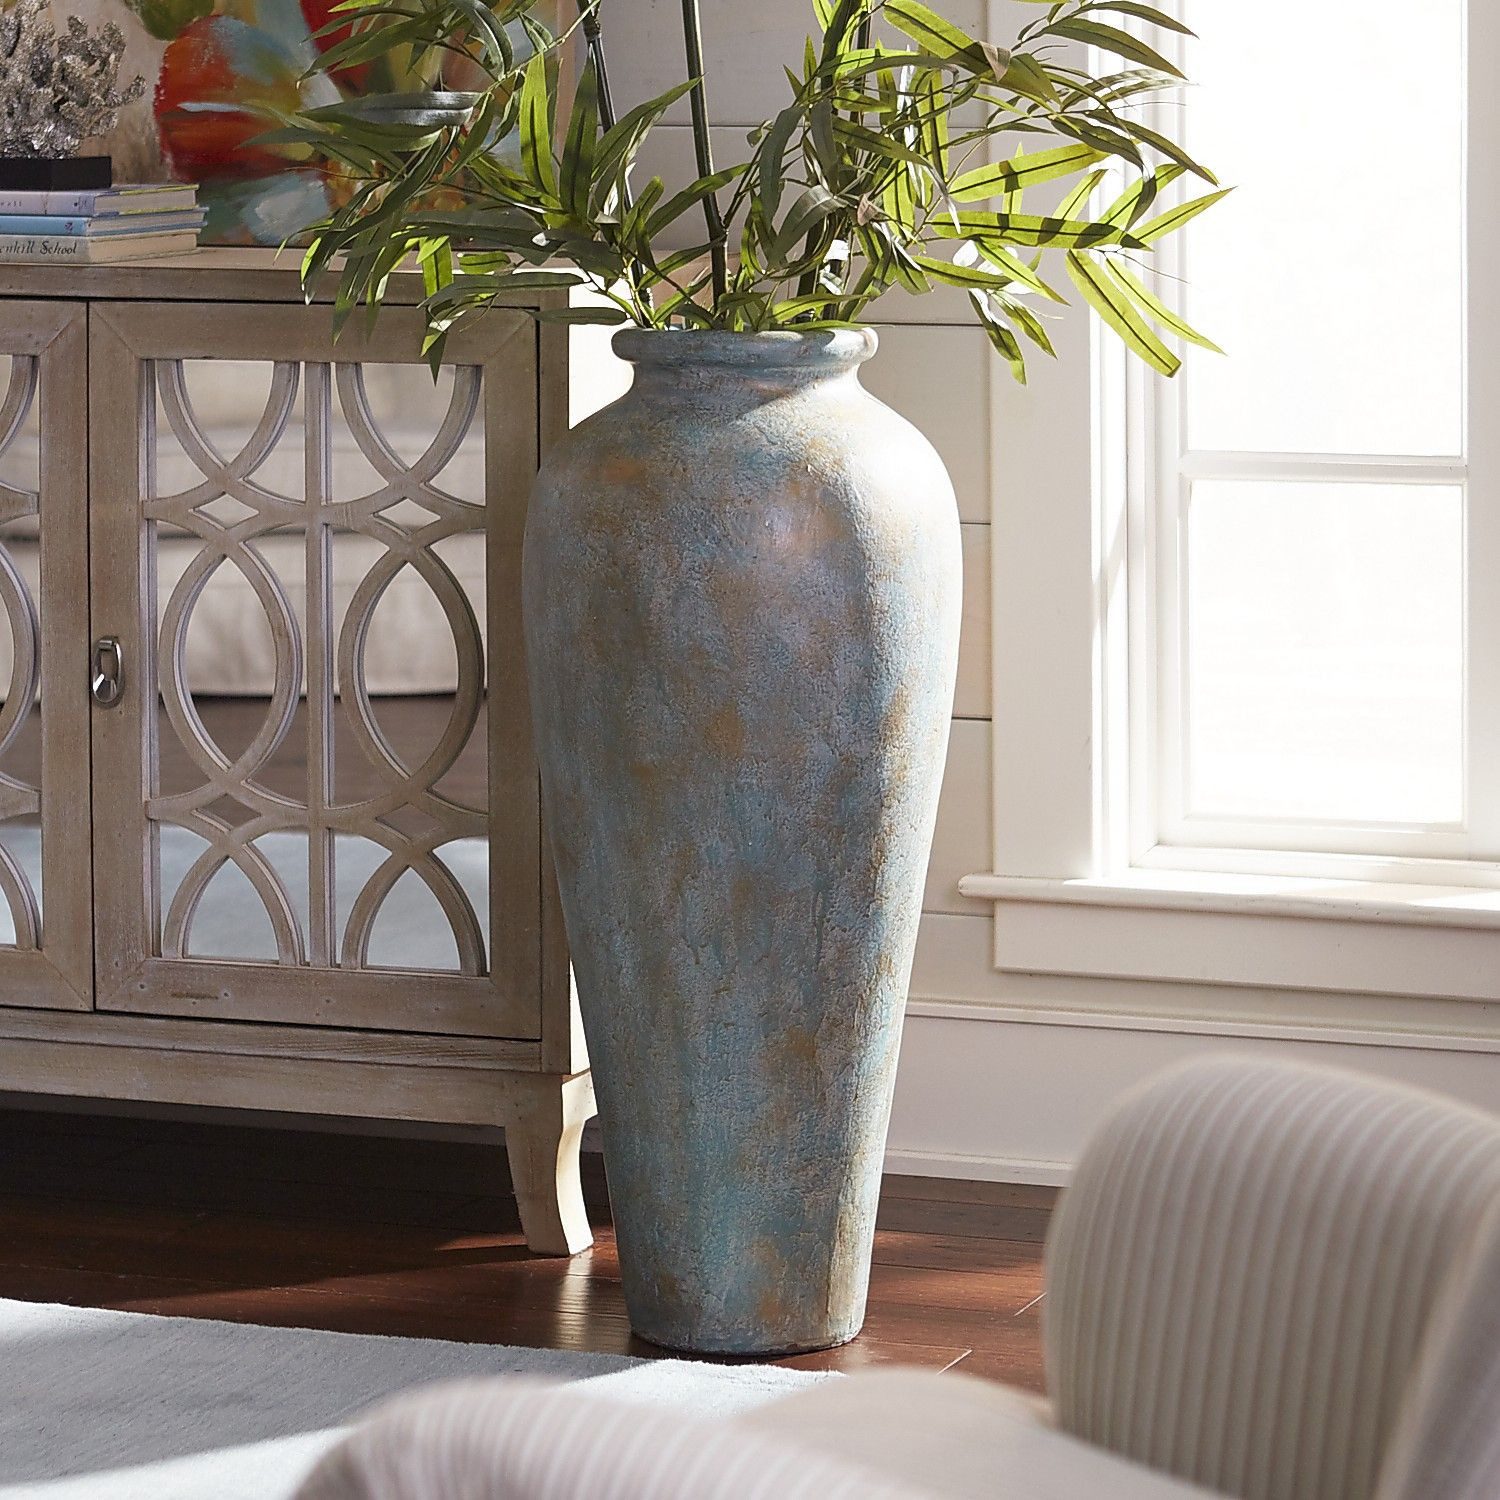 Tall Floor Vase Sets Of Blue Green Patina Urn Floor Vase Products Pinterest Flooring Intended for Blue Green Patina Urn Floor Vase